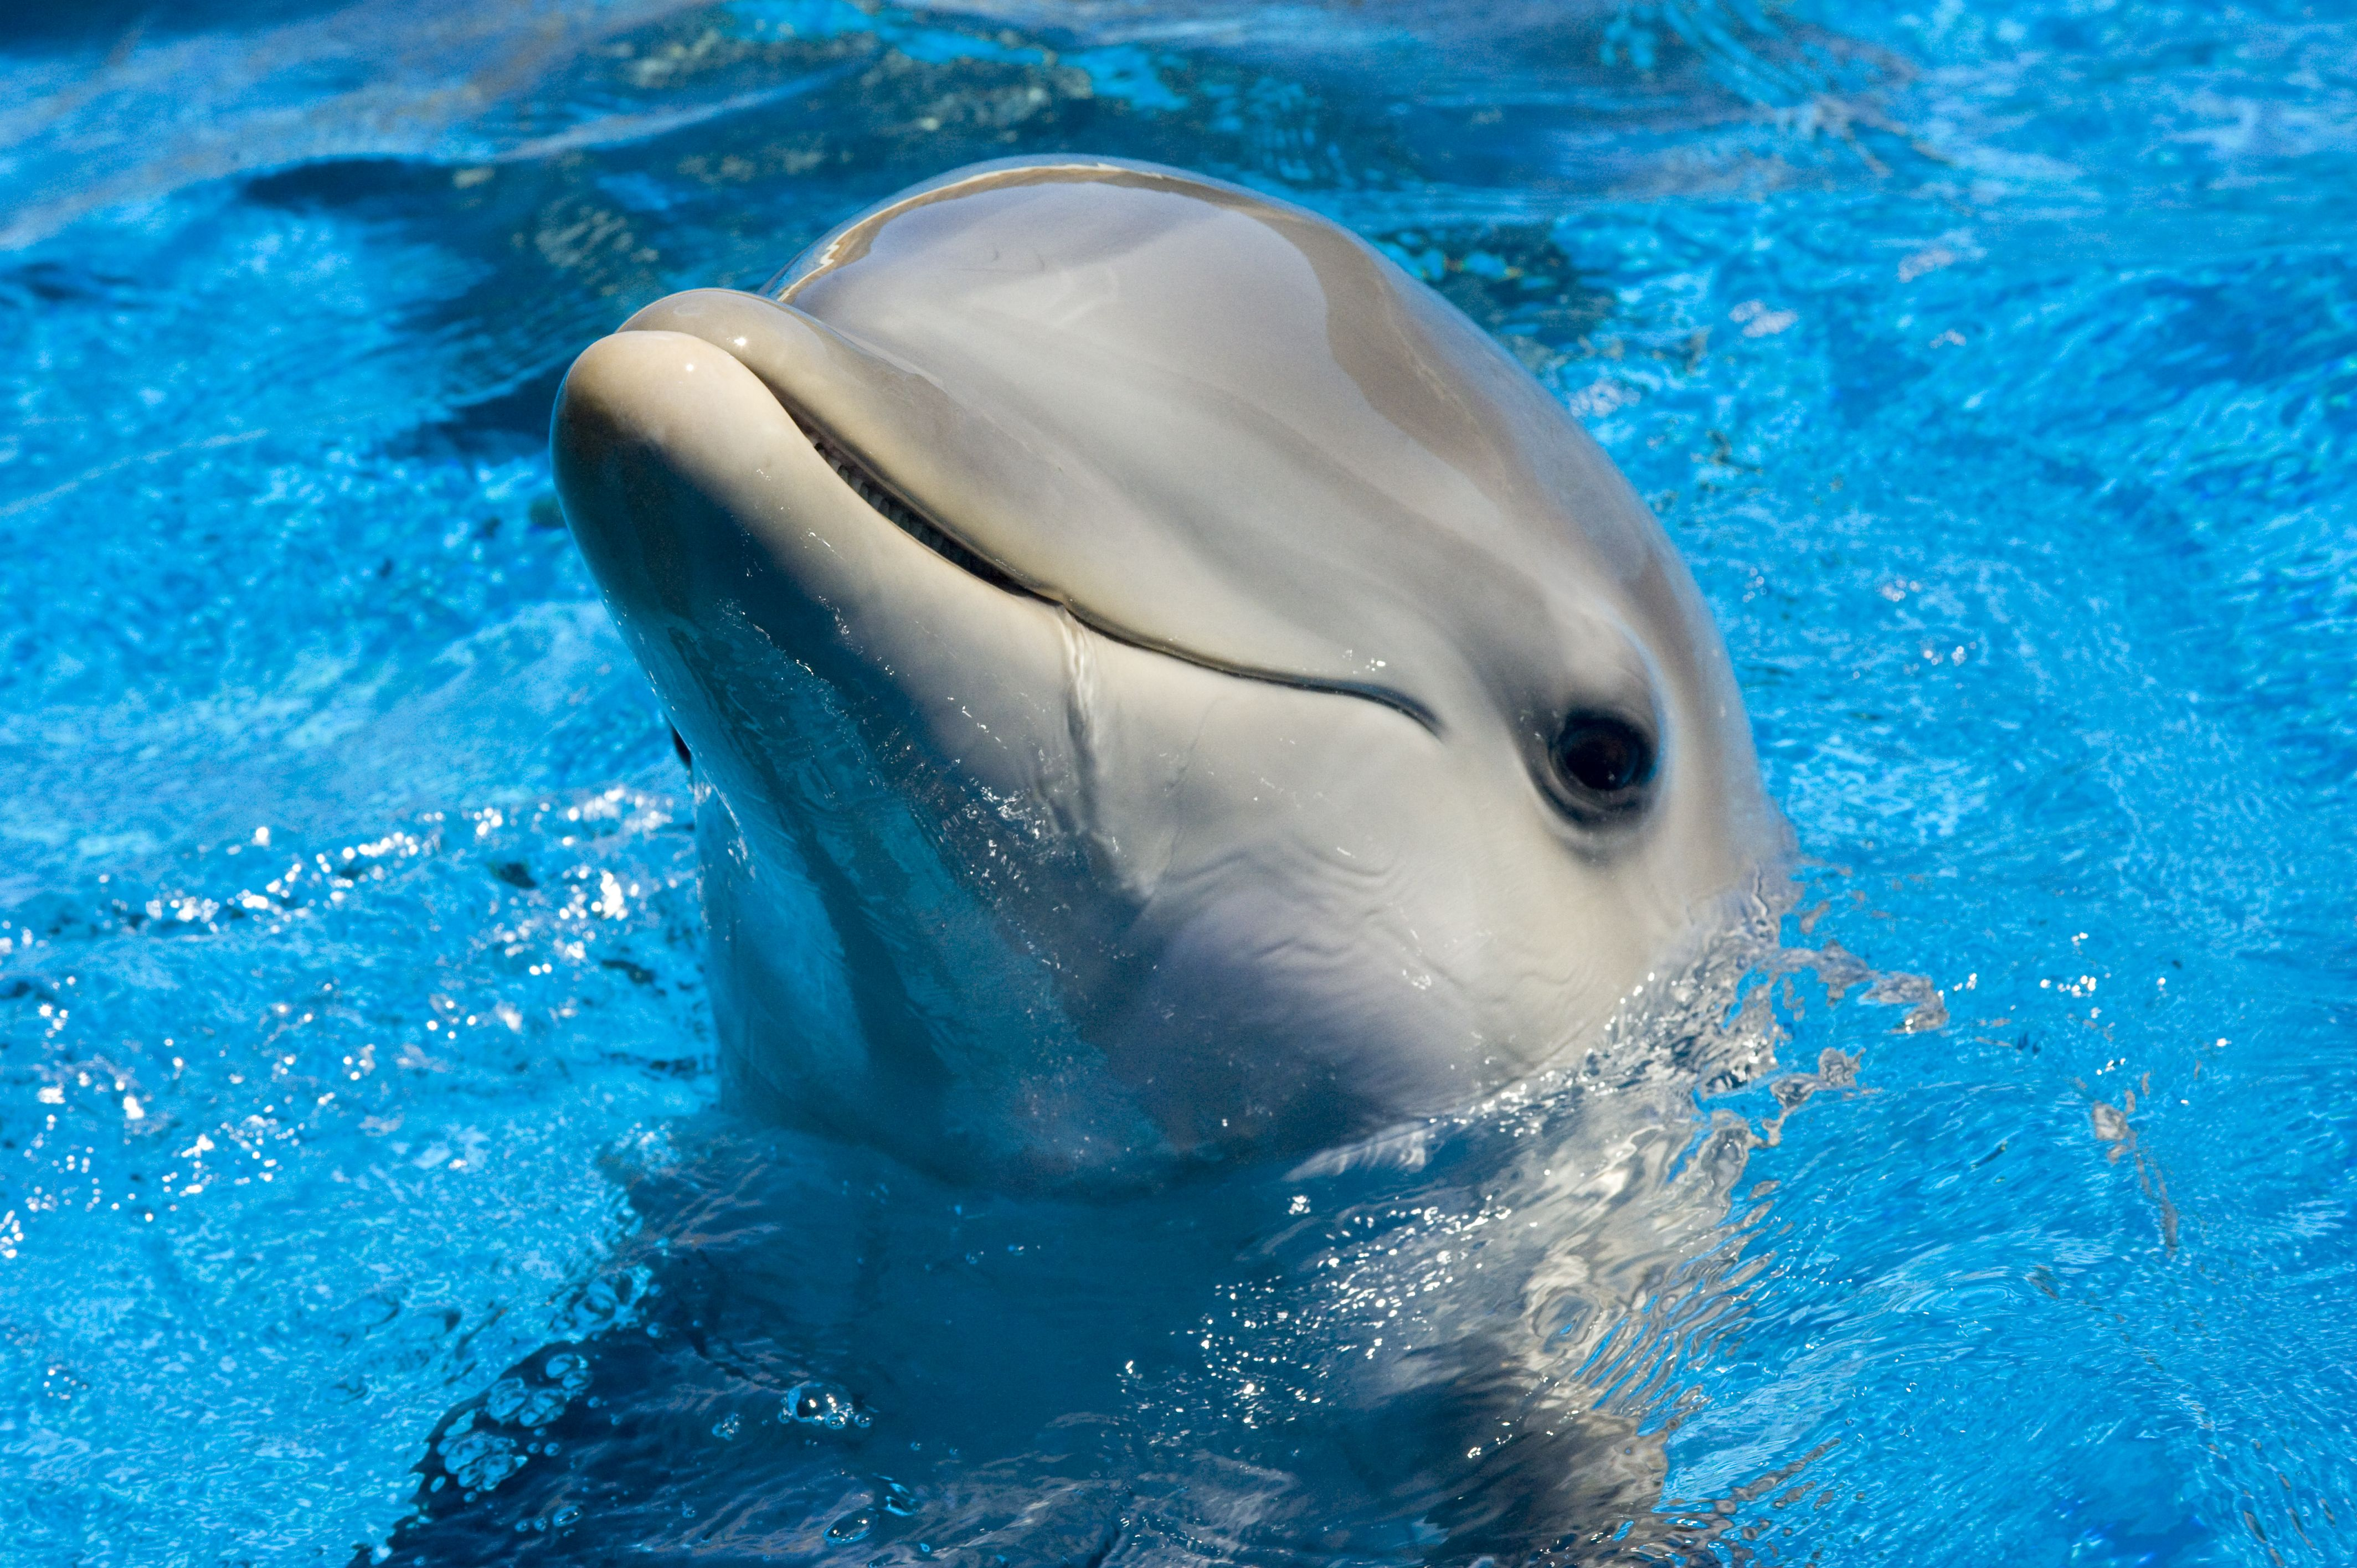 4256x2832 Dolphin Wallpaper - Wallpapers Browse